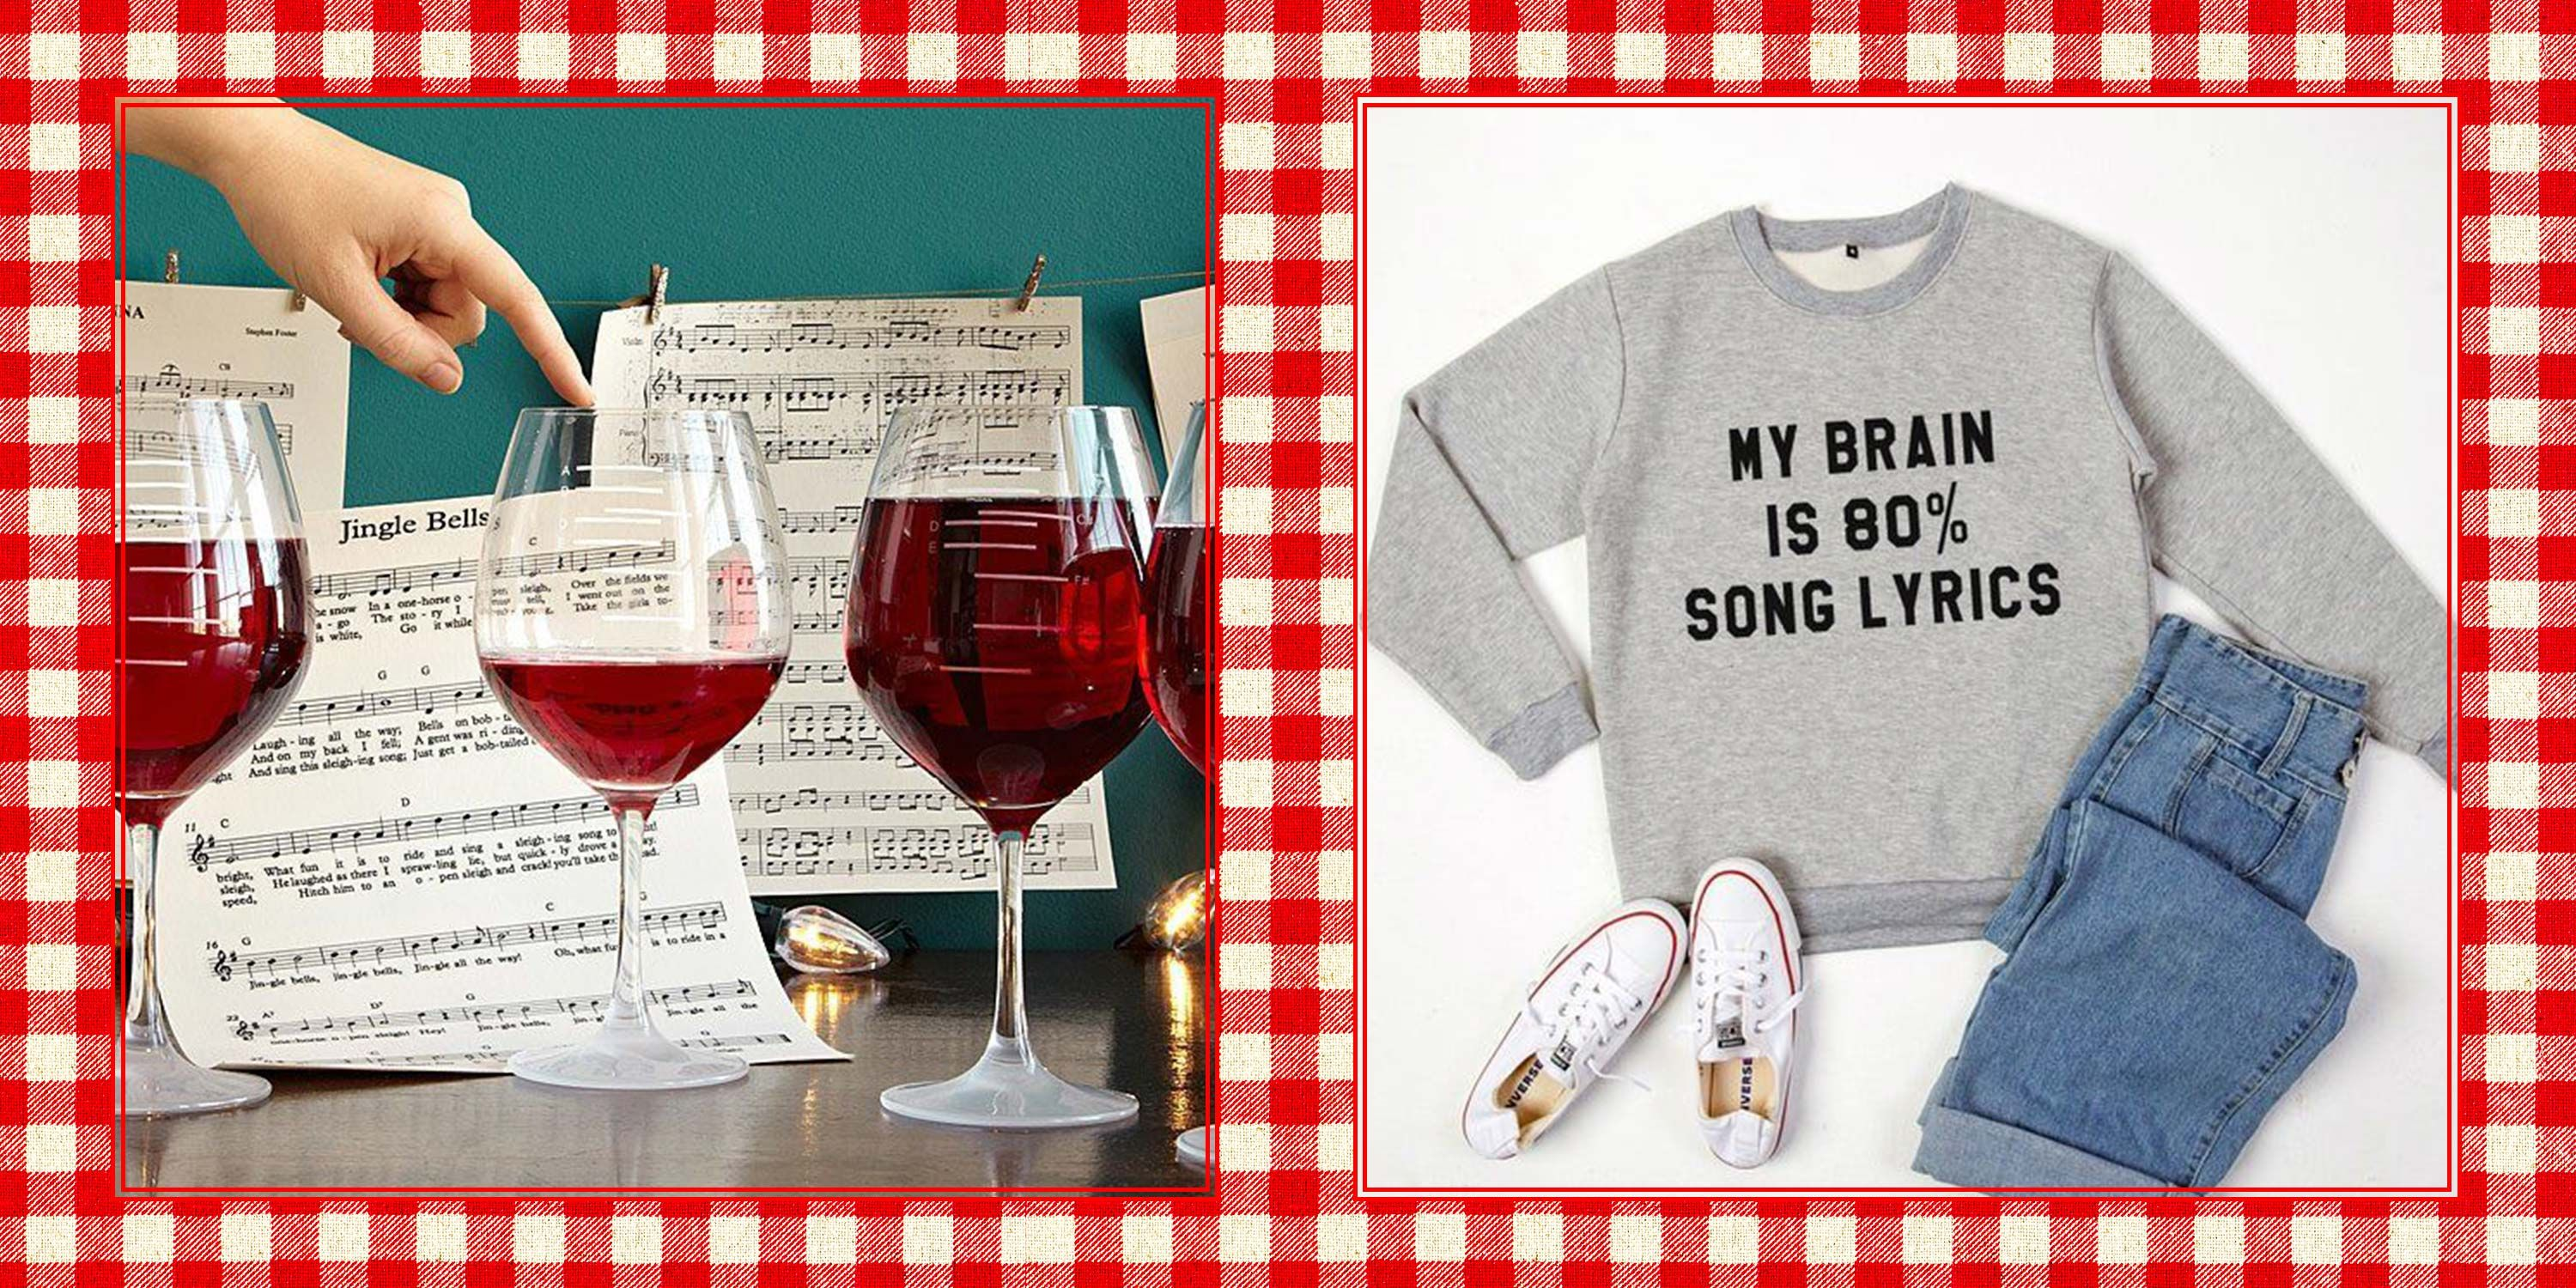 20 Best Gifts for Music Lovers That'll Have Them Singing Your Praises